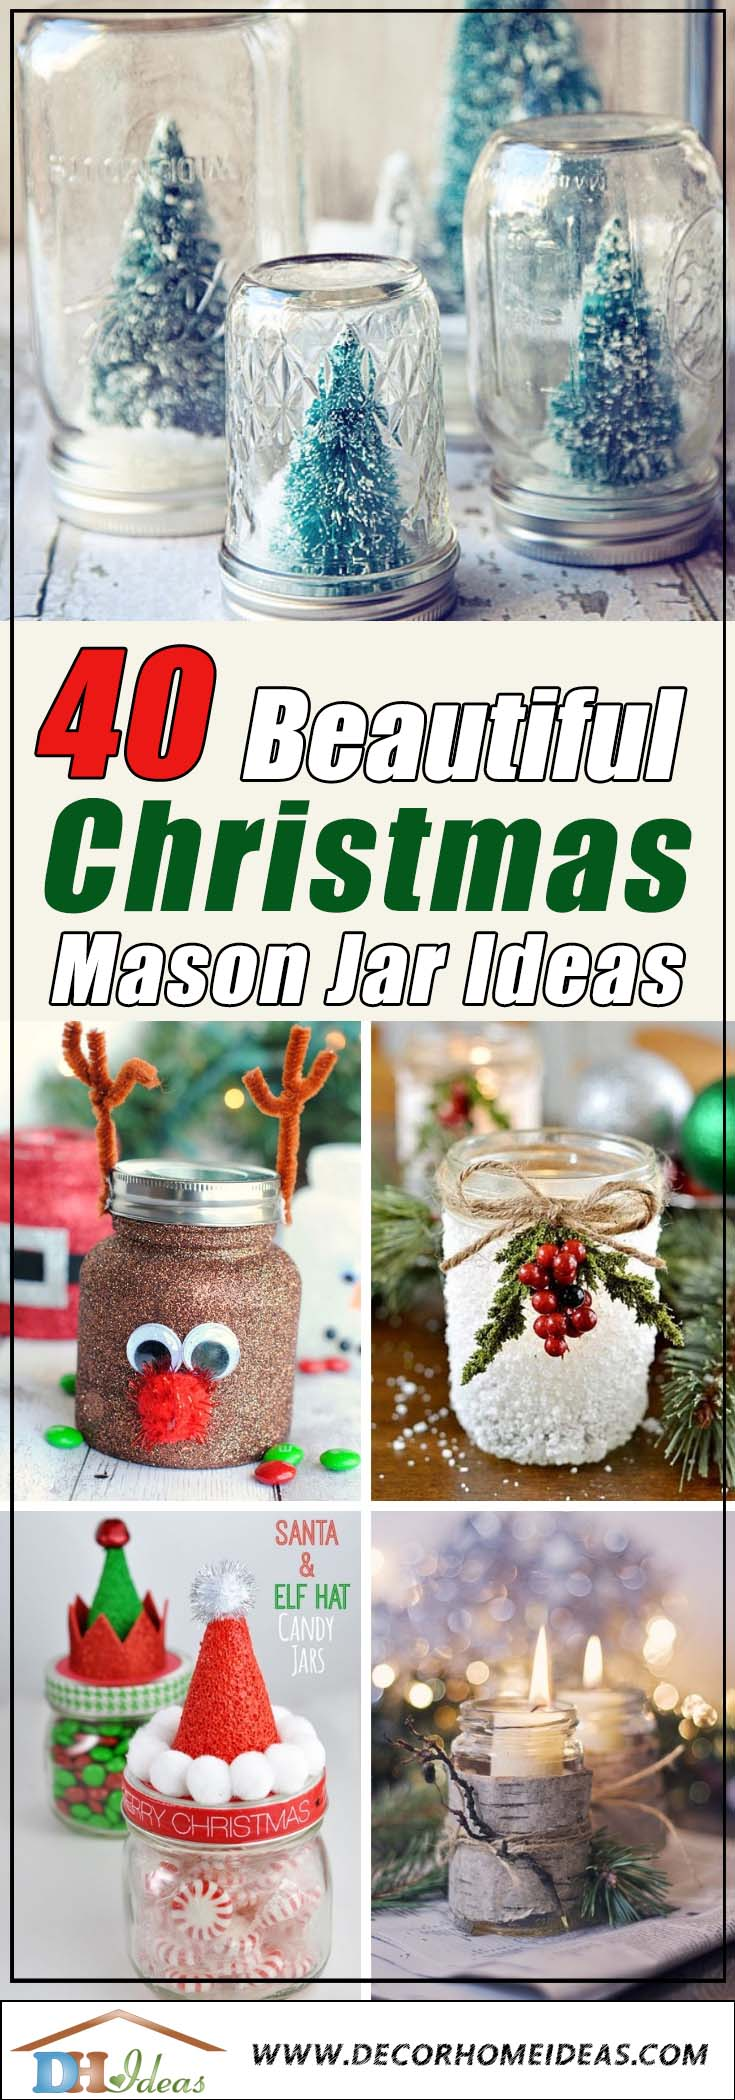 40 Beautiful Christmas Spirit Jar Ideas | DIY some great Christmas decoration jars. #xmas #x-mas #christmas #christmasdecor #christmasjars #jars #decoration #christmasdecorations #decoratingideas #festive #decorhomeideas